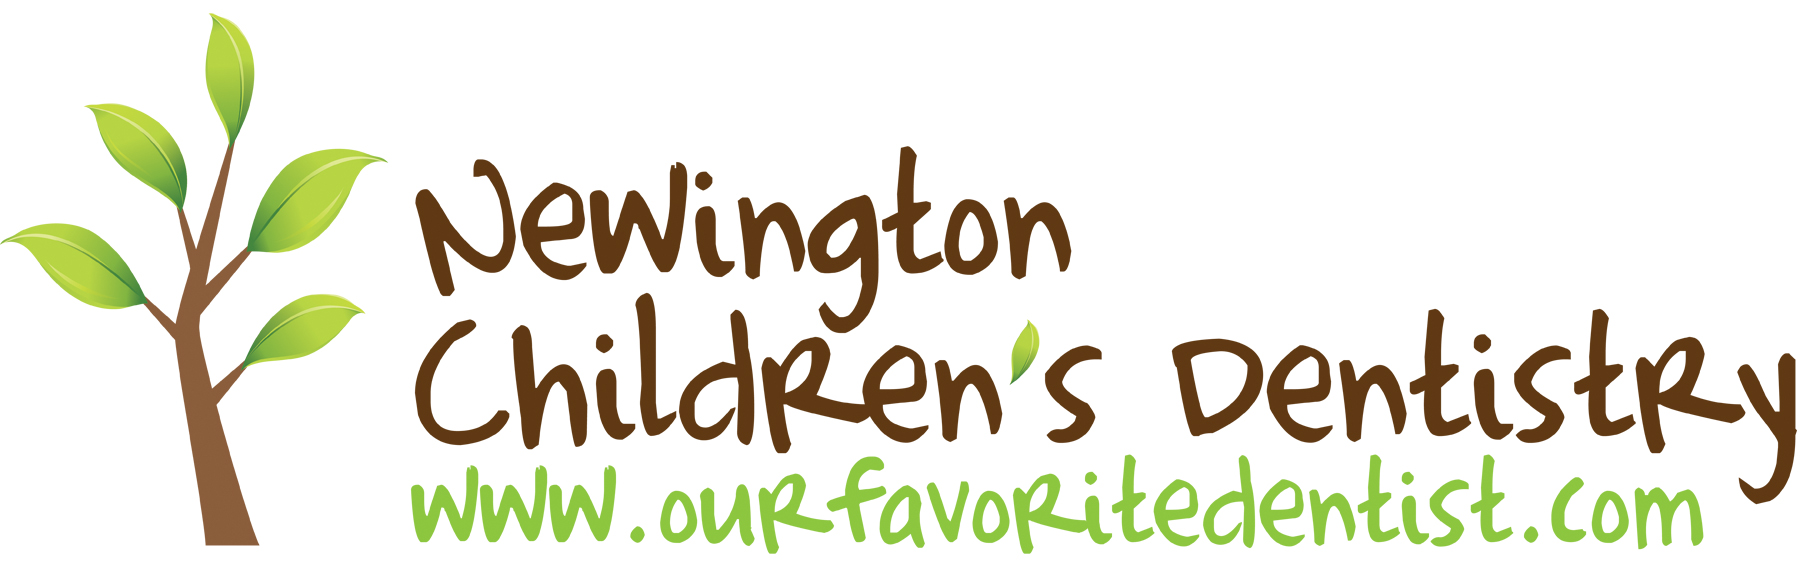 Newington Children's Dentistry